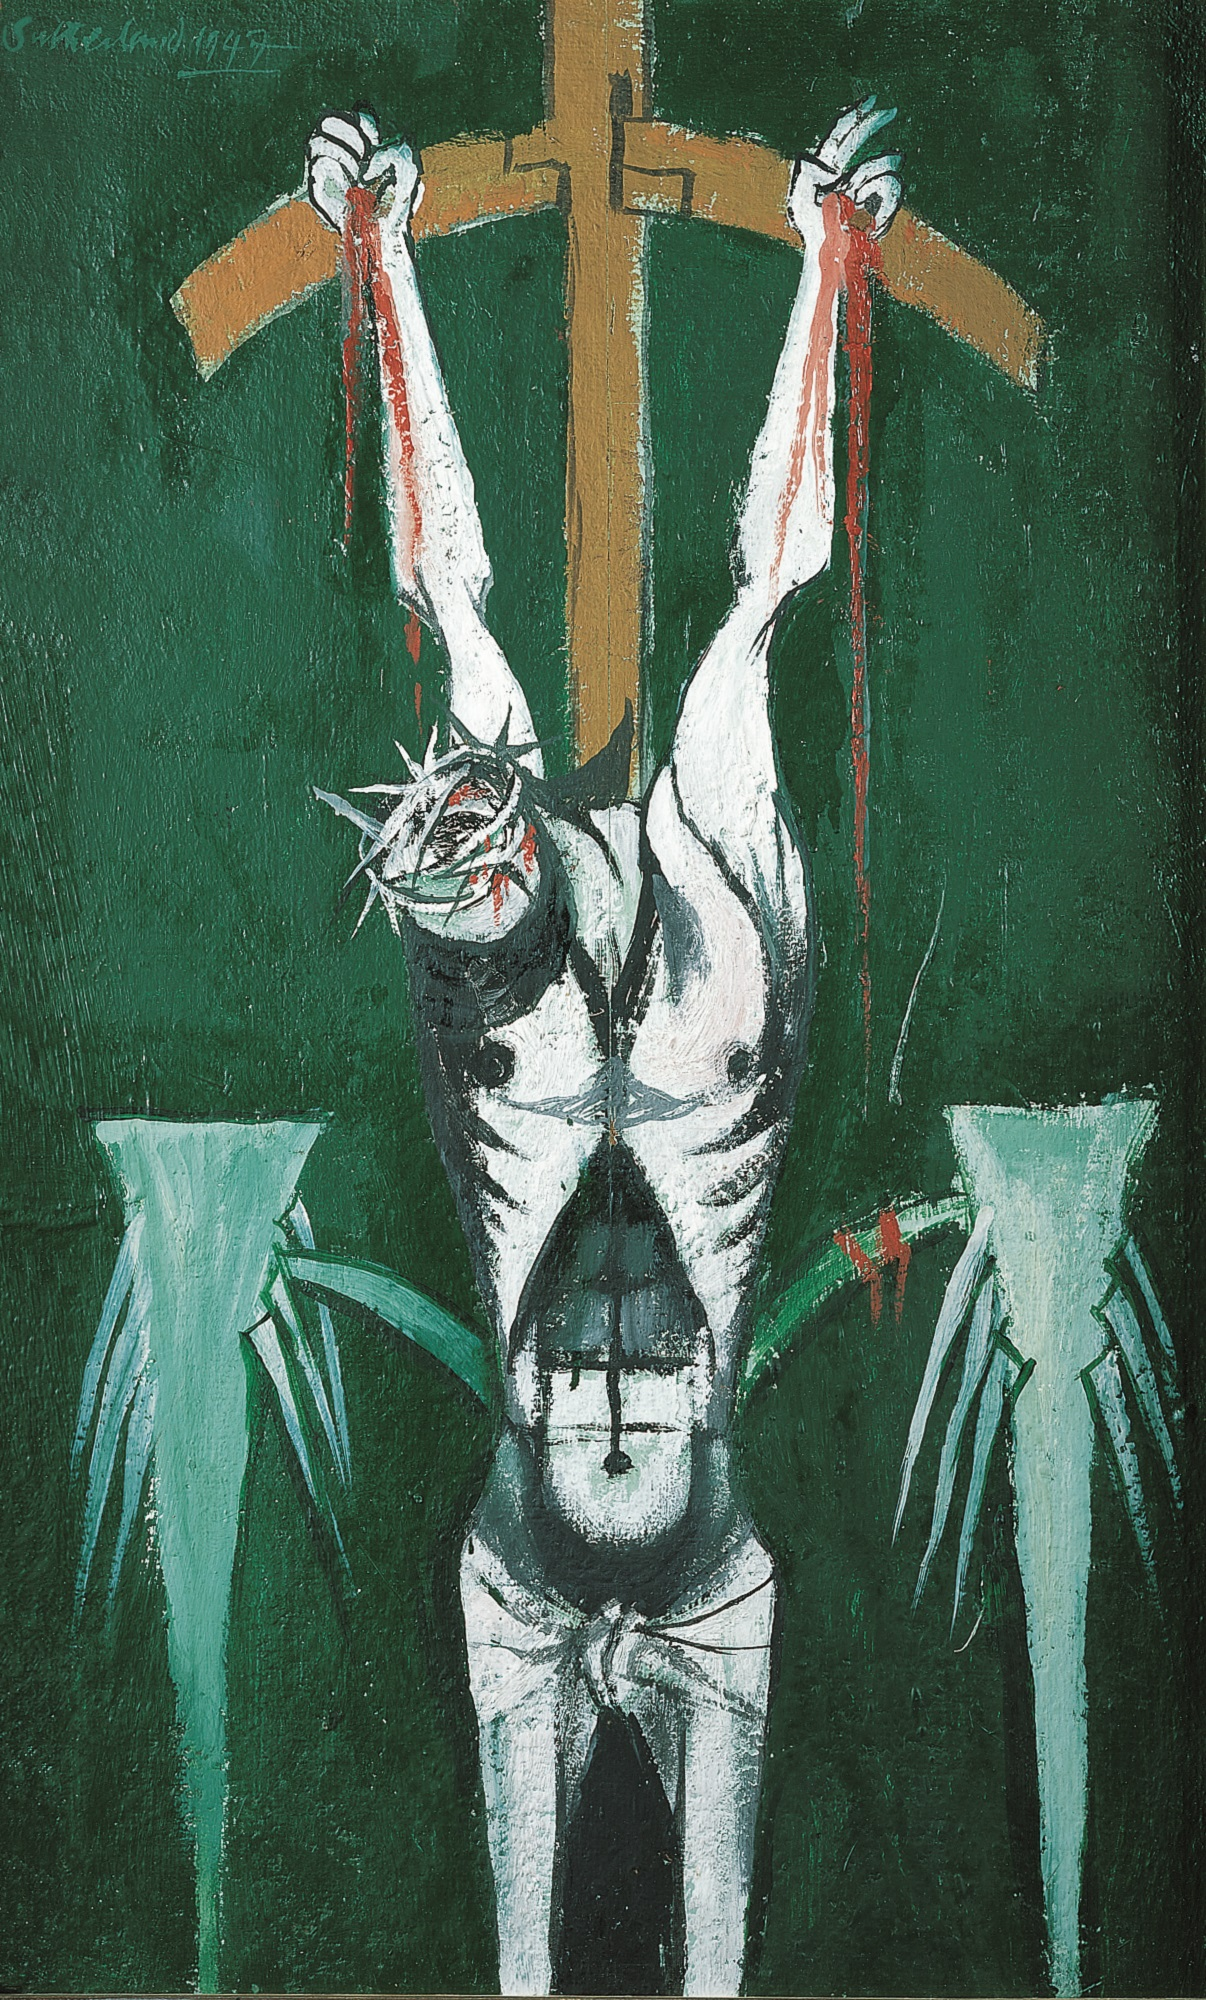 Painting depicting Jesus hanging on the cross, his head bowed and with an emaciated torso against a green background